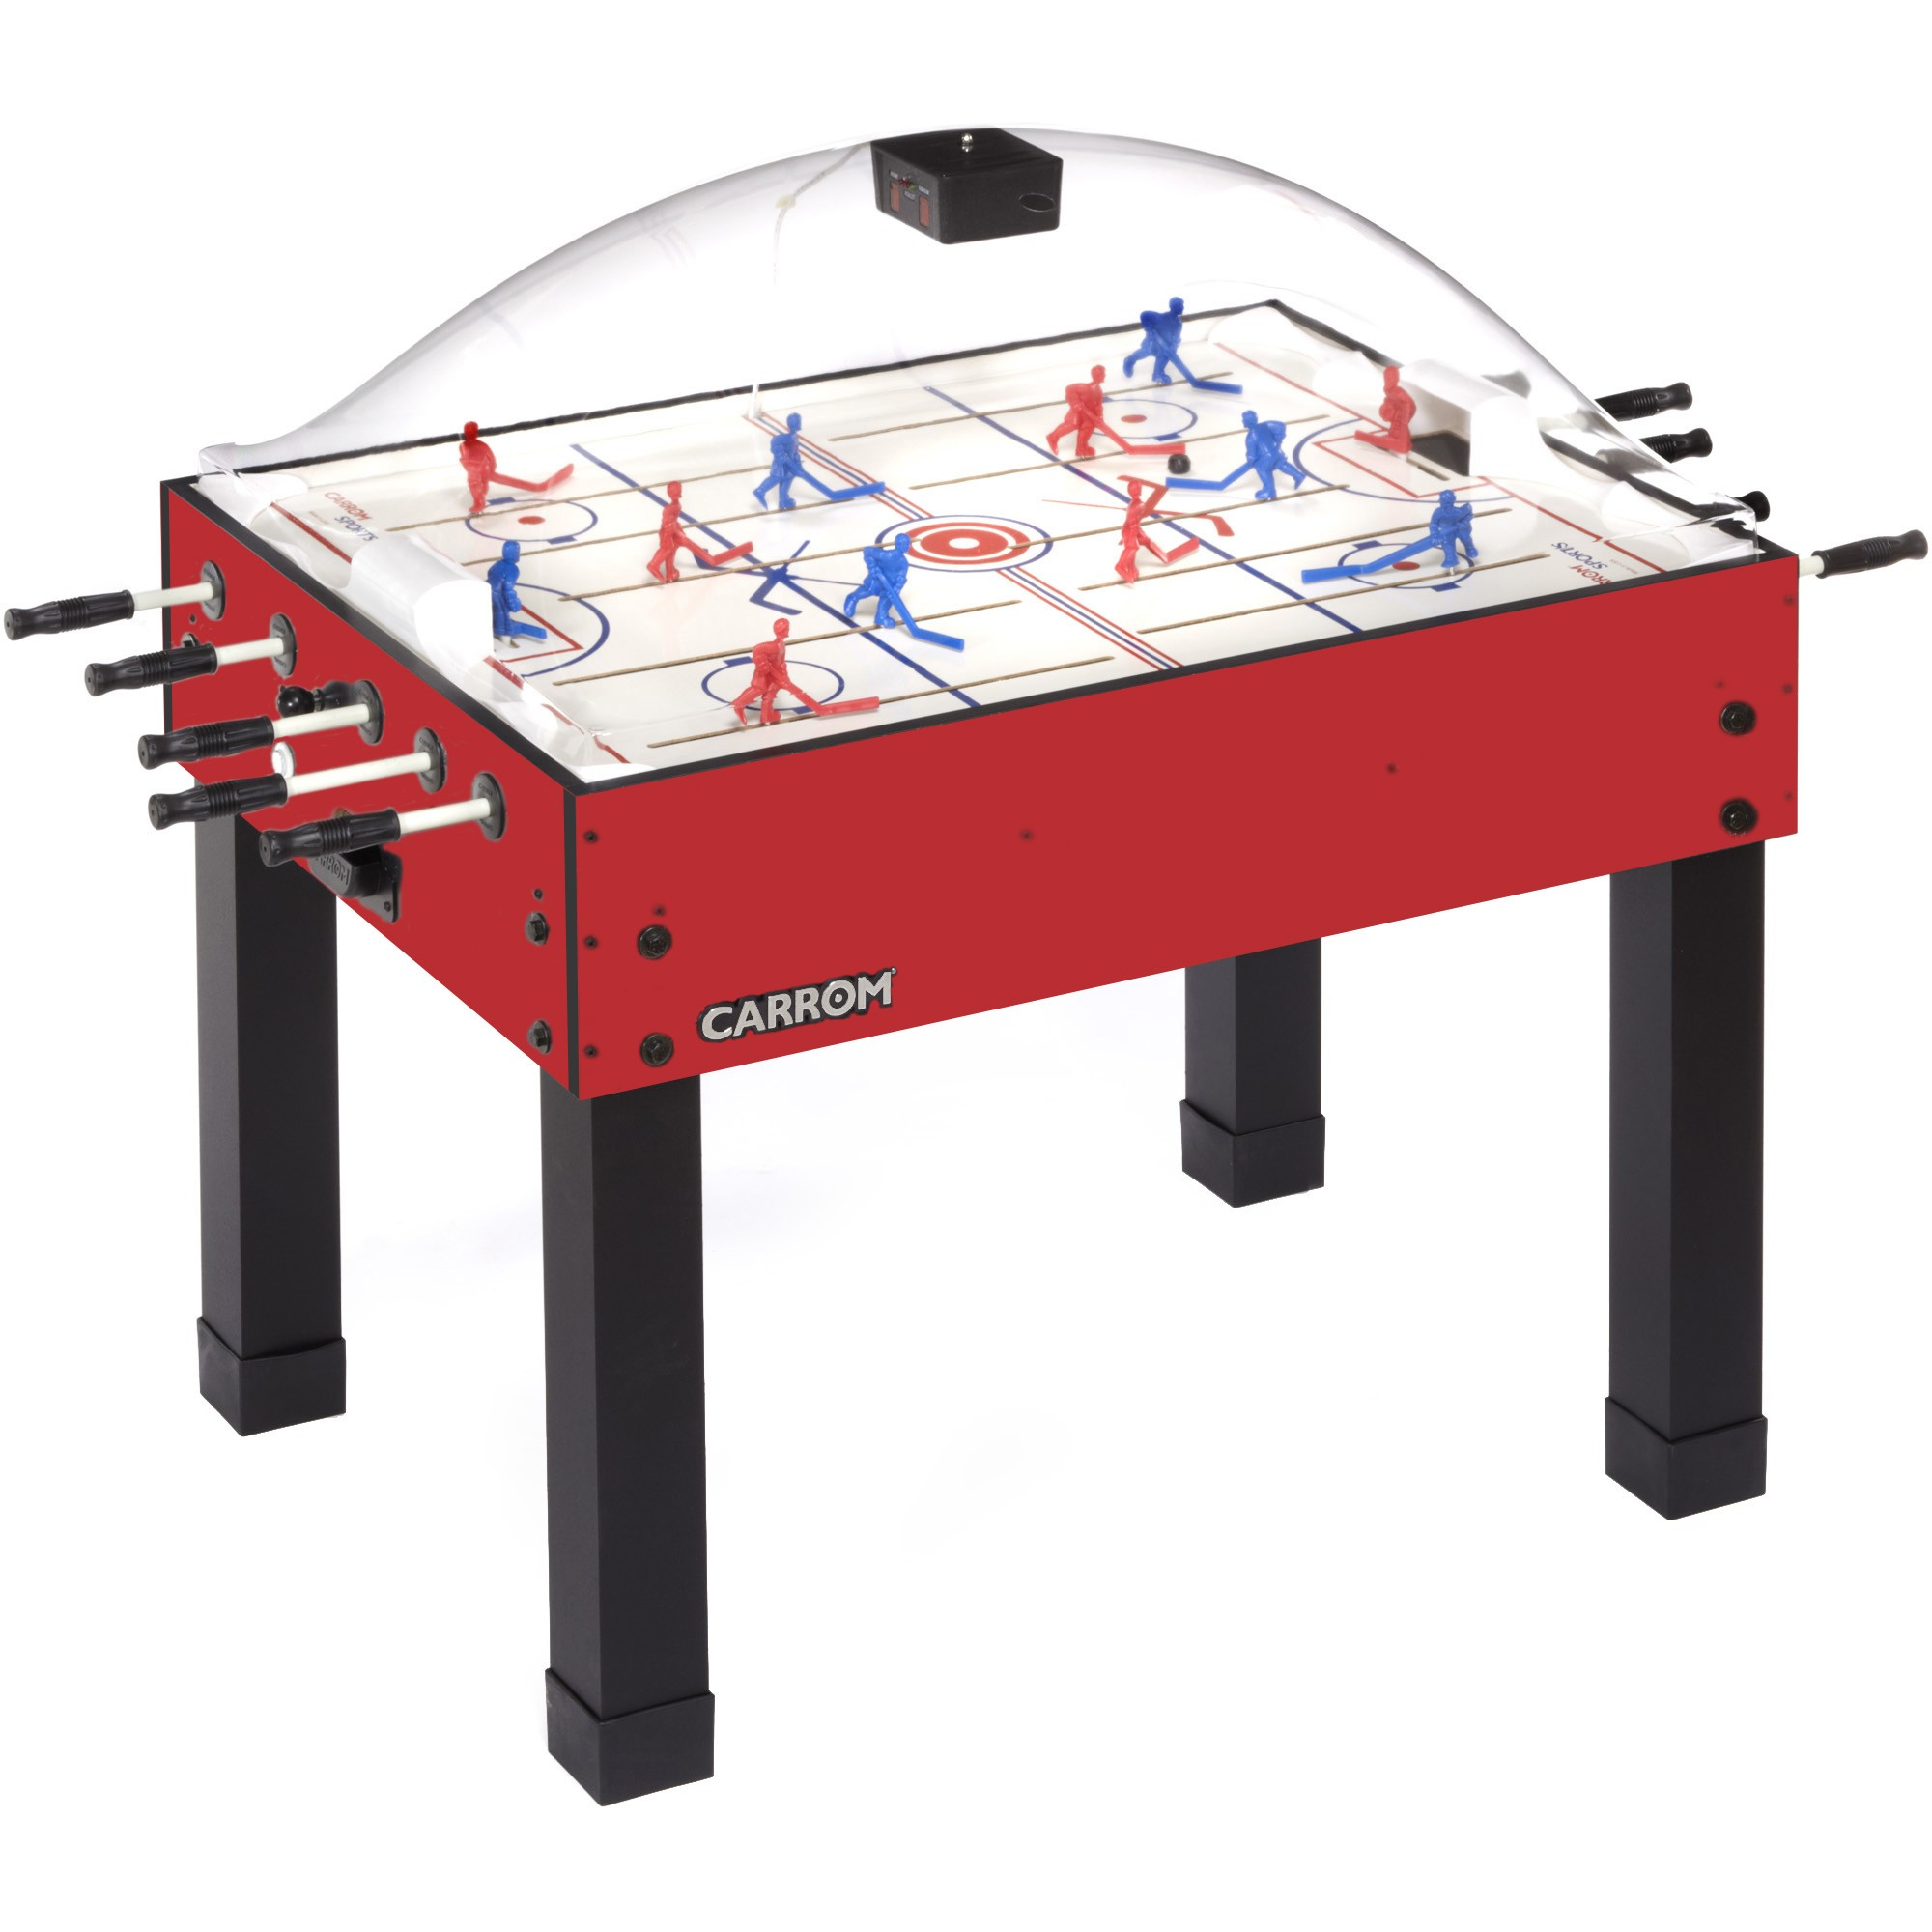 Table Dome Super Hockey417